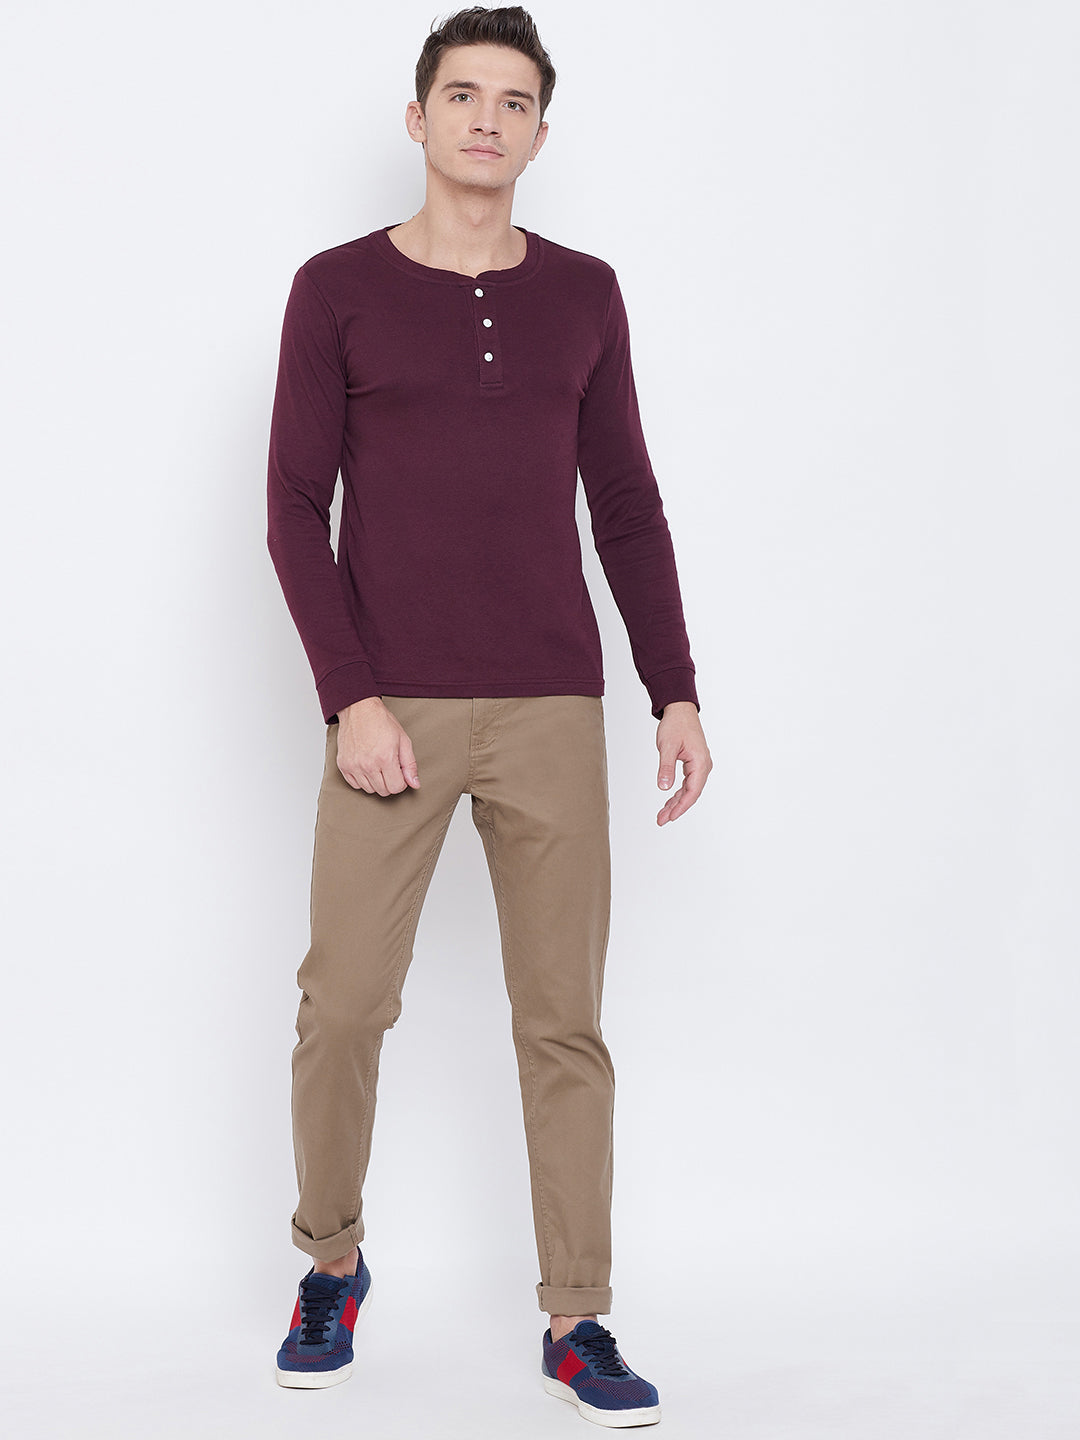 Octave Apparels Duck Pant for Men